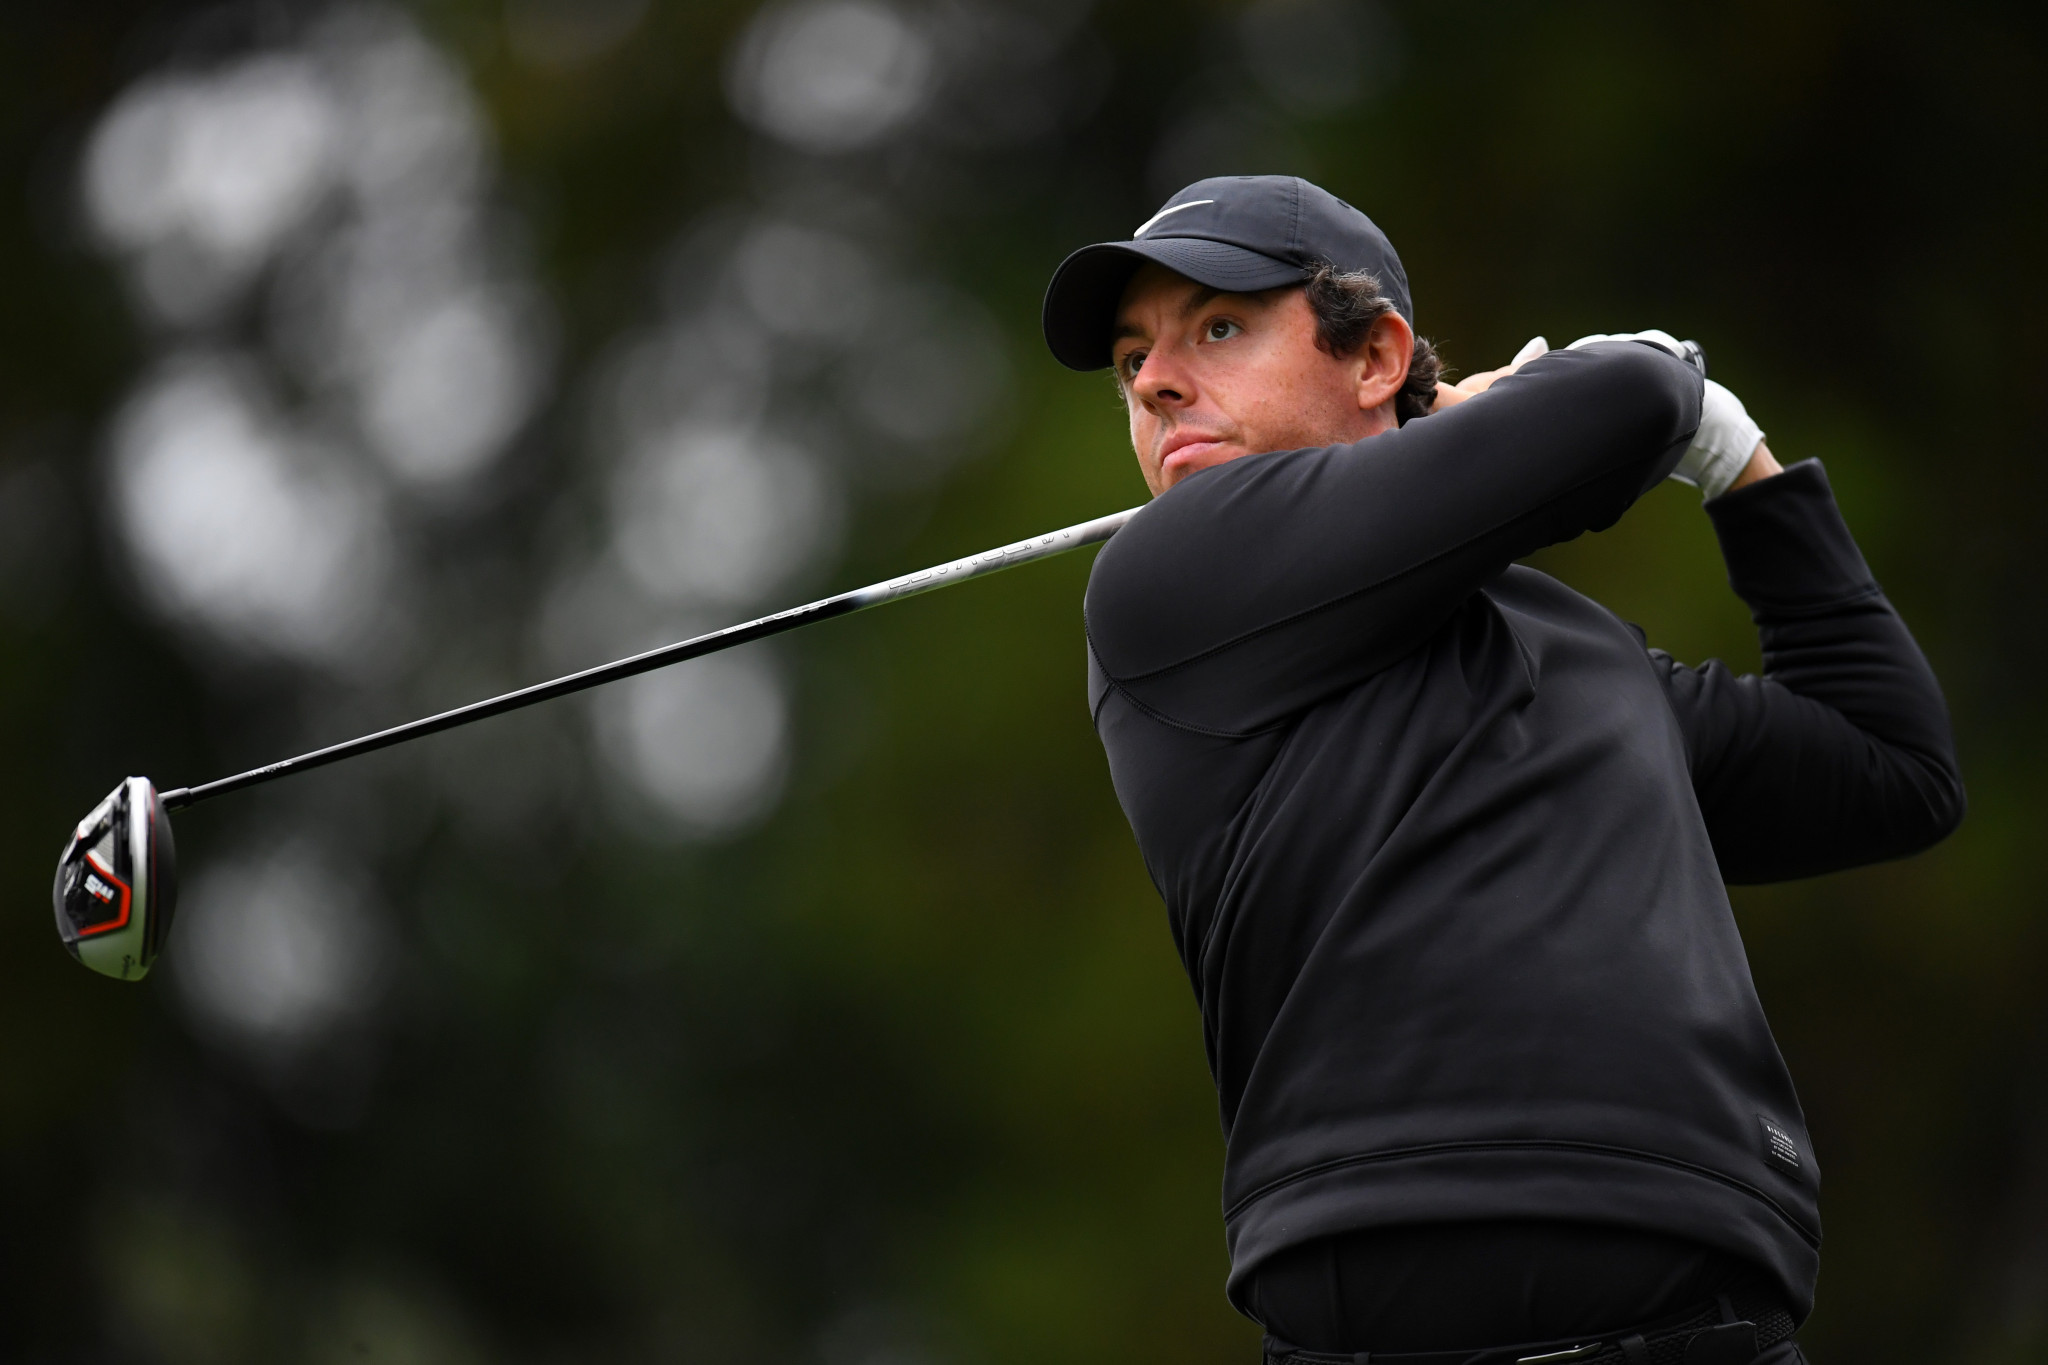 McIlroy to compete for Ireland at Tokyo 2020